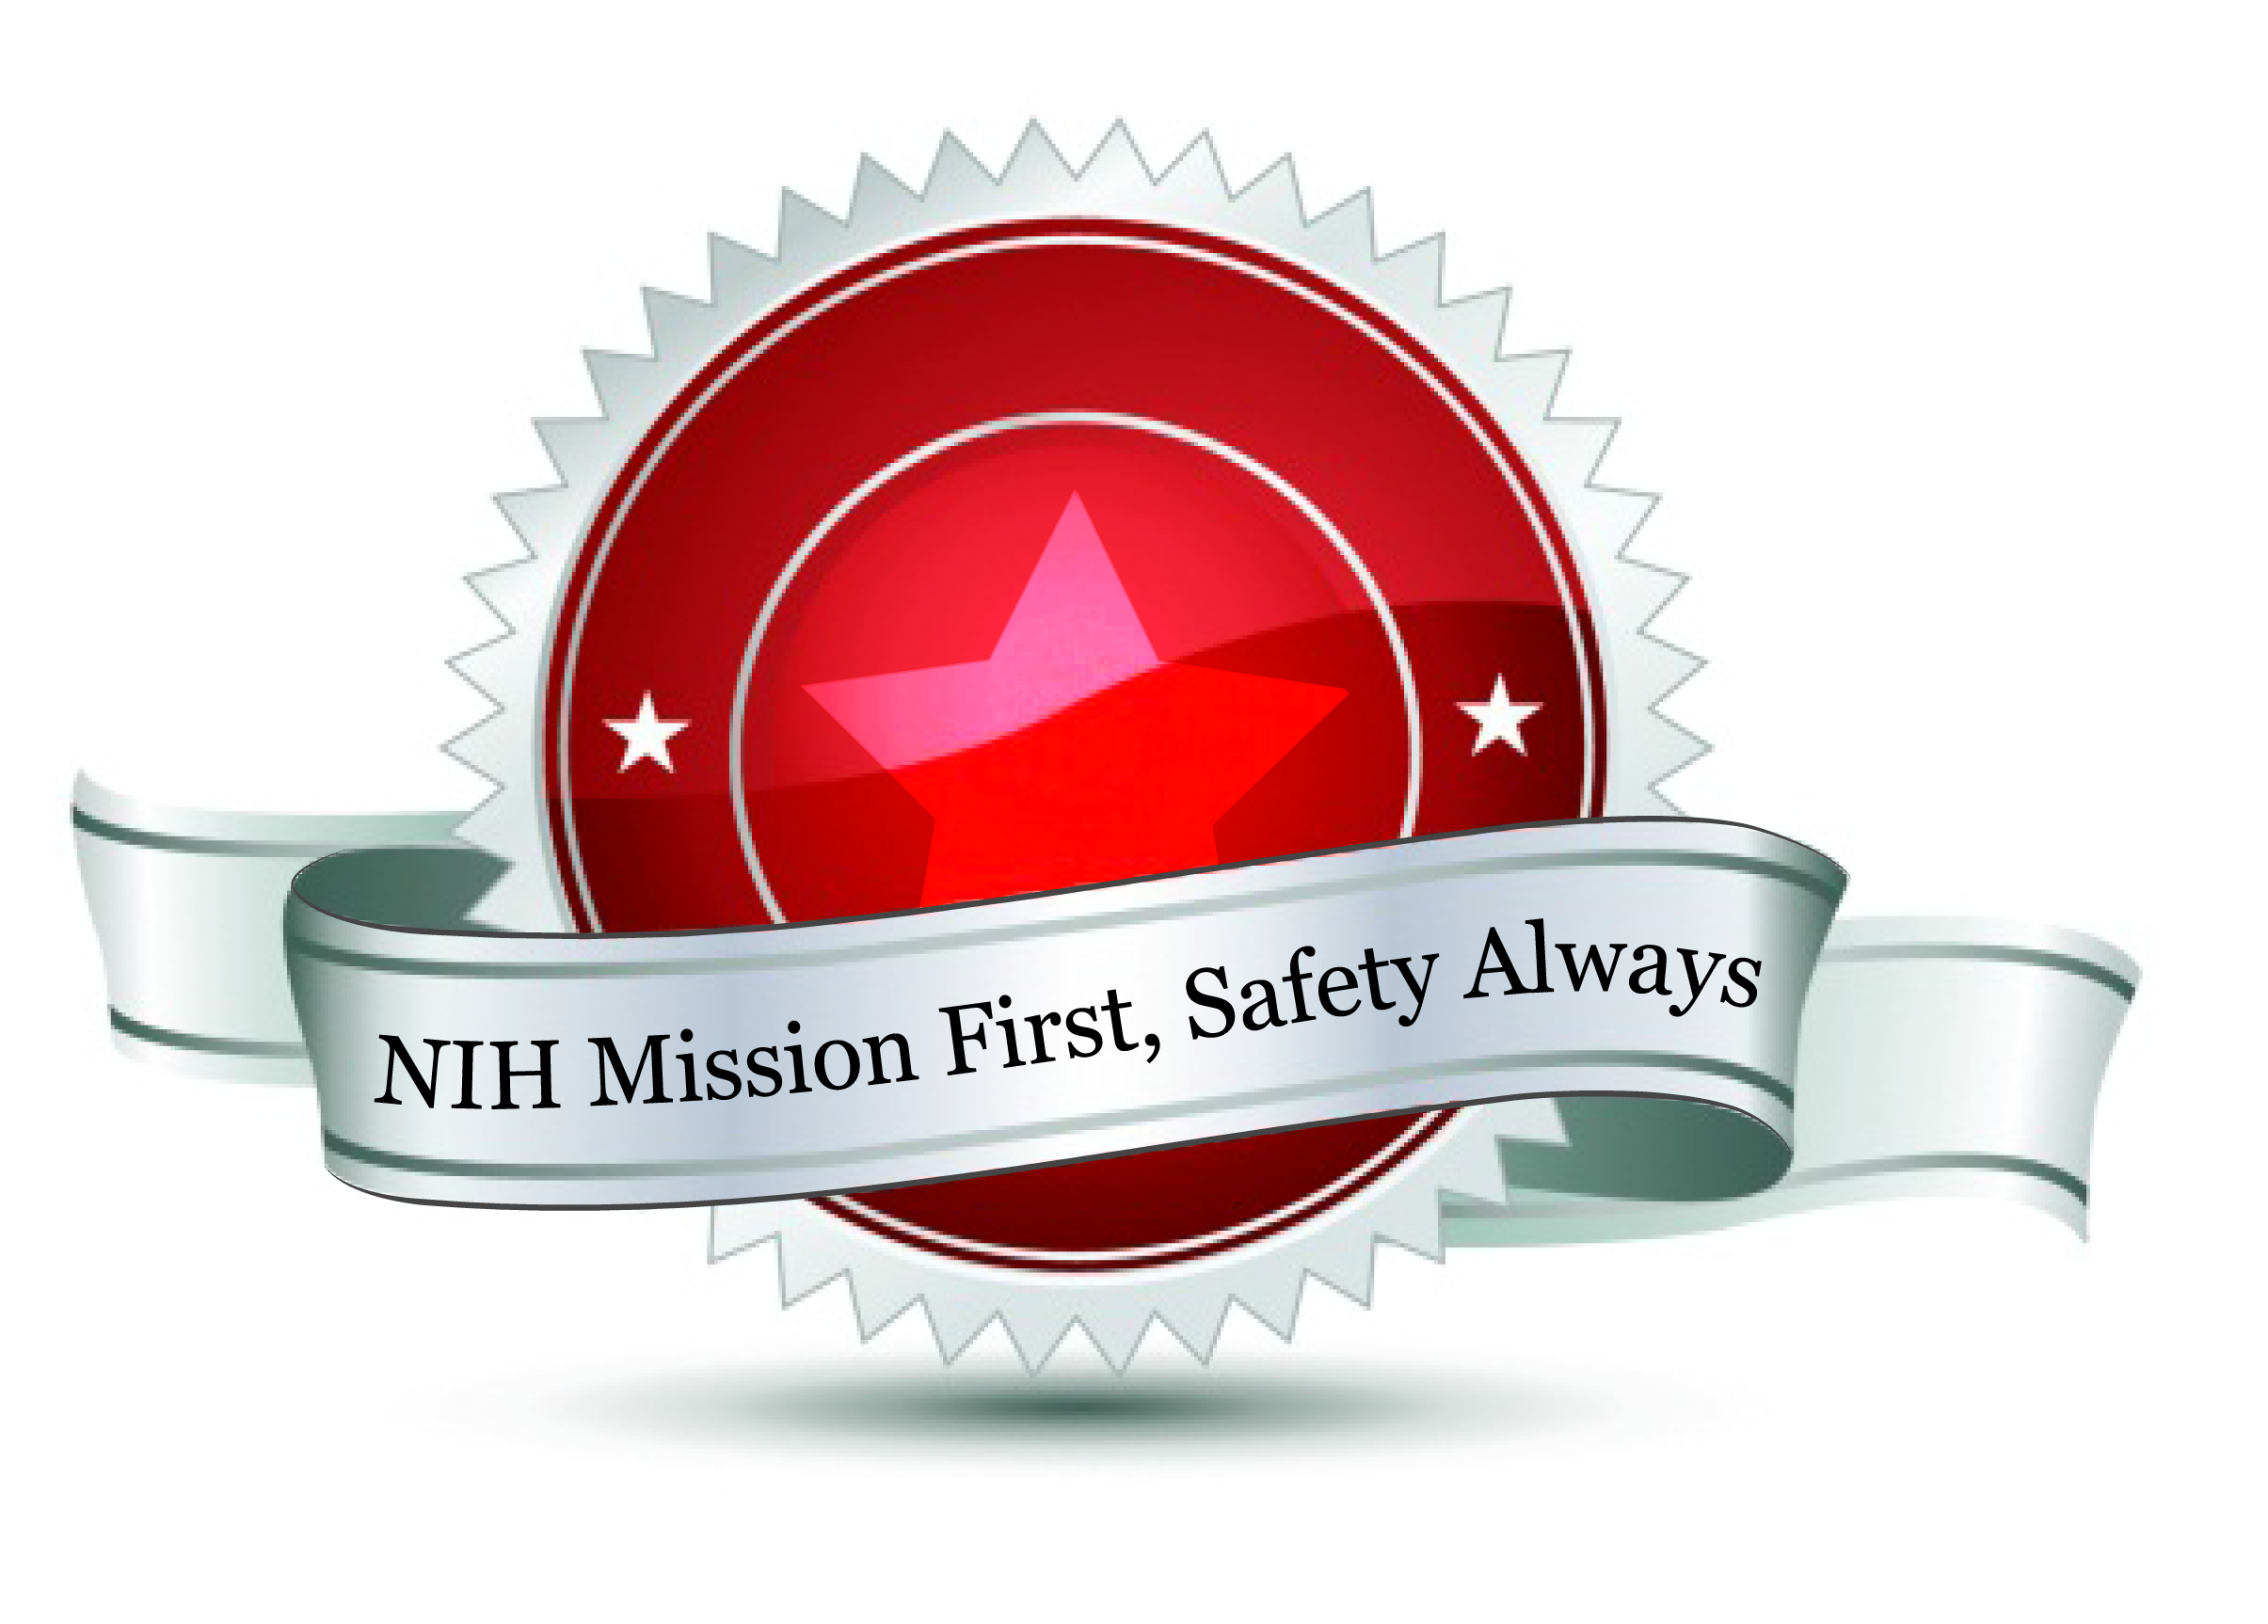 NIH Mission First, Safety Always Emblem